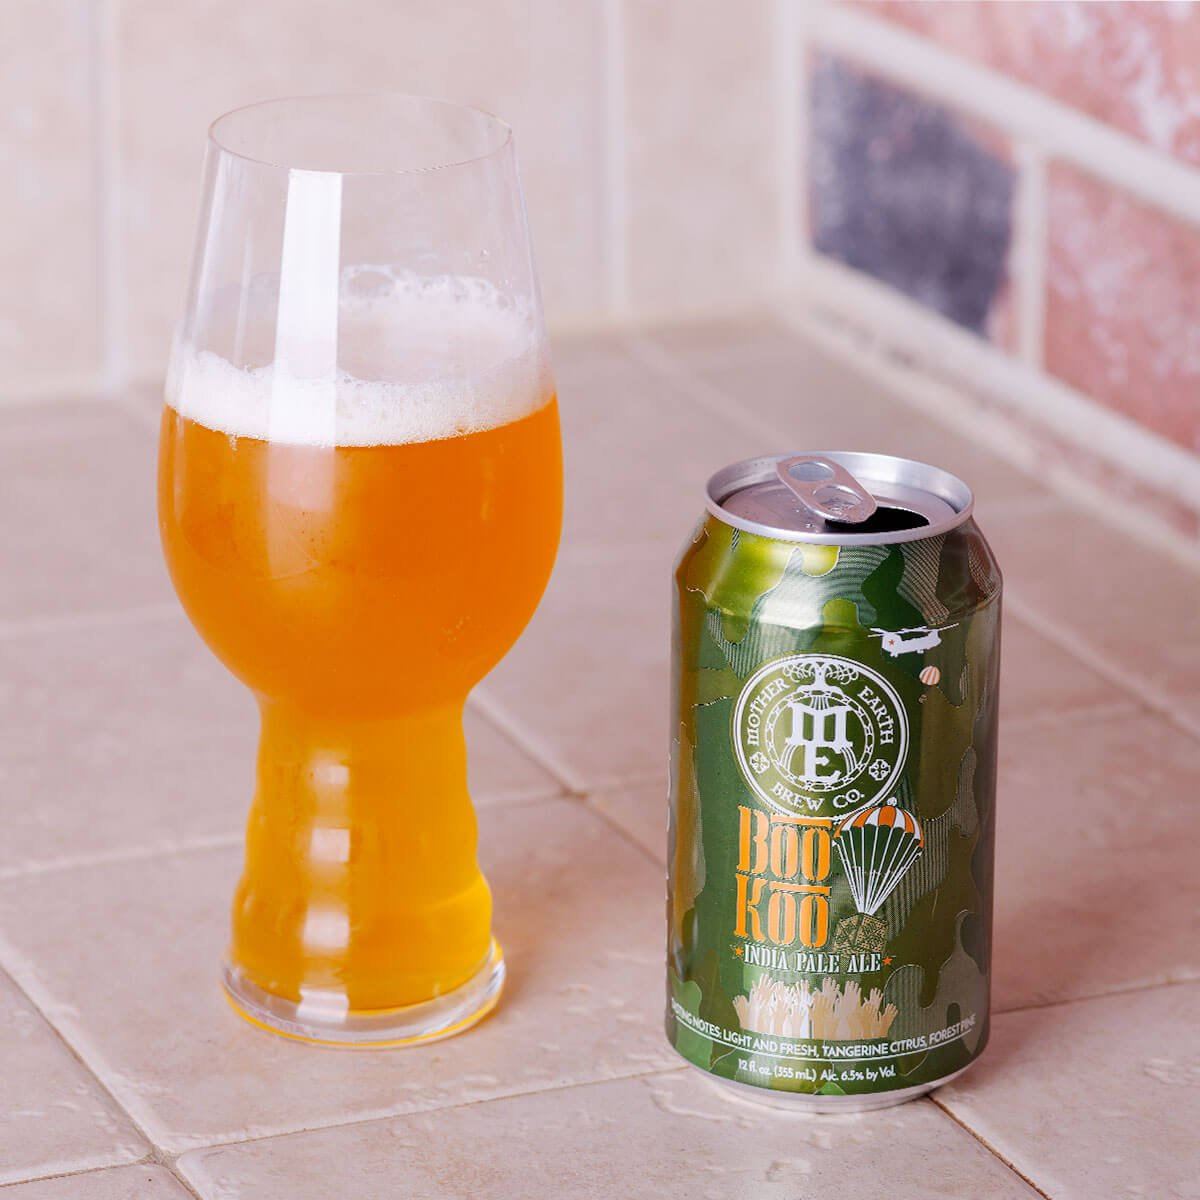 Boo Koo IPA is an American IPA by Mother Earth Brew Co. whose hoppy tangerine and pine is balanced by bready malt.